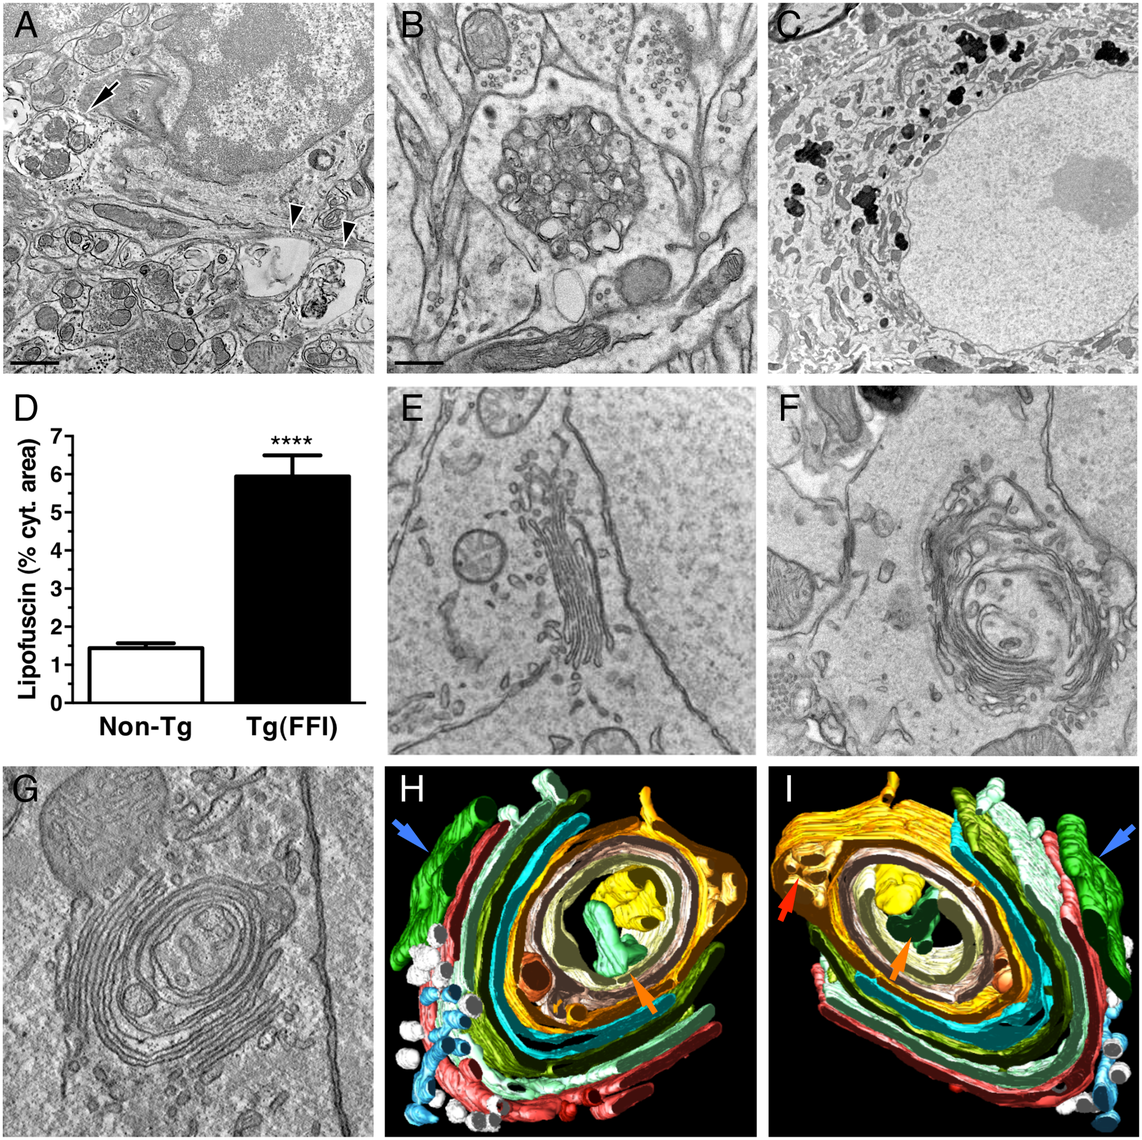 Ultrastructural abnormalities in Tg(FFI) neurons.